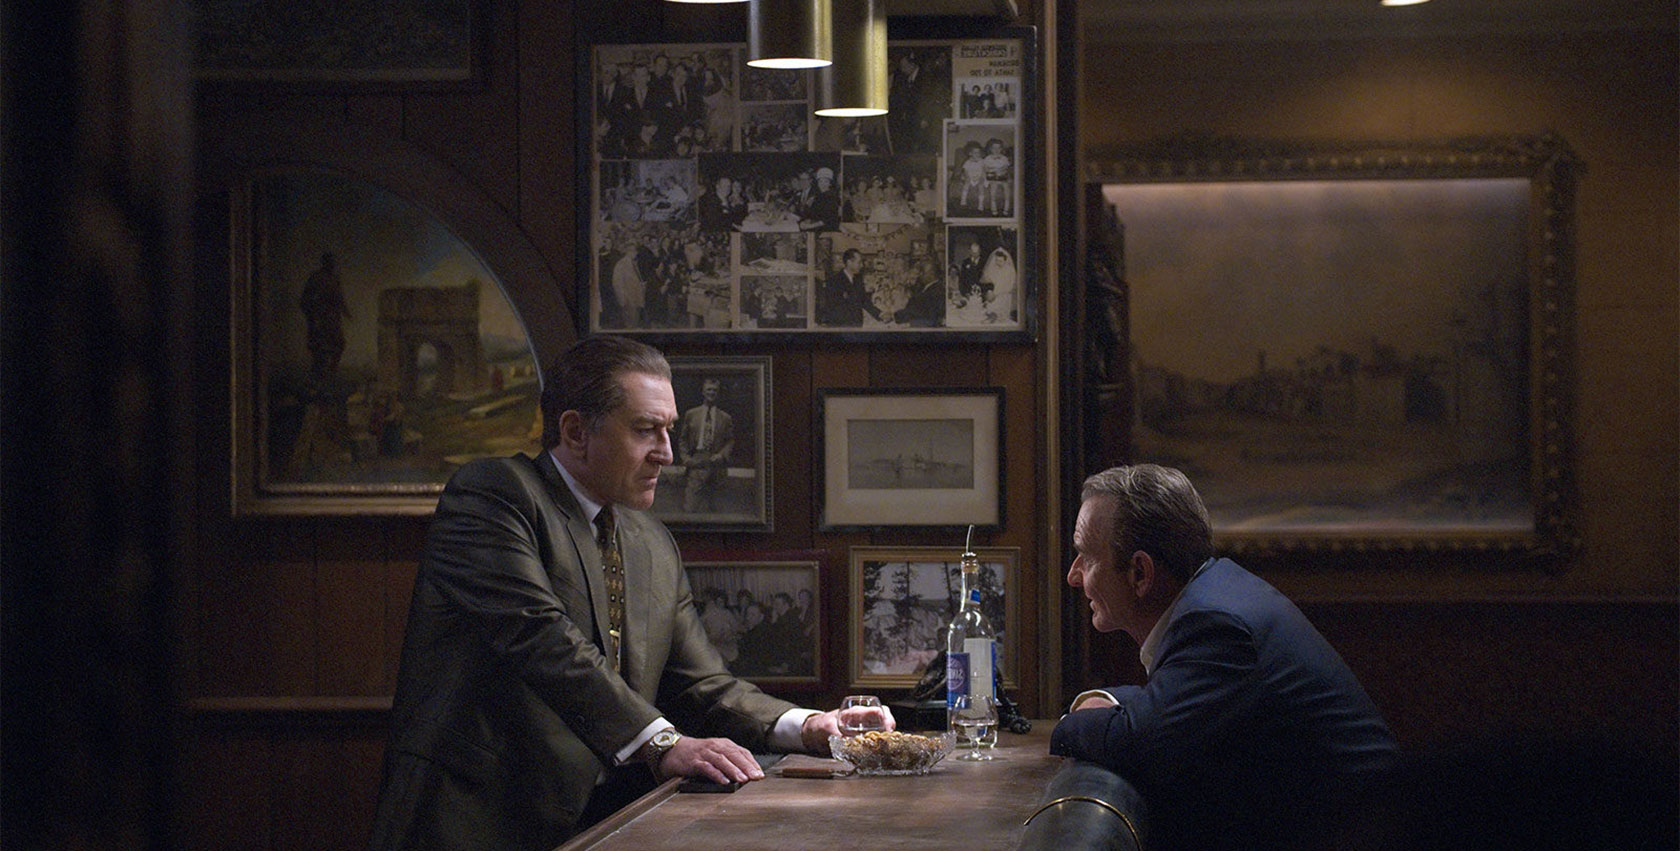 THE IRISHMAN, directed by Martin Scorsese